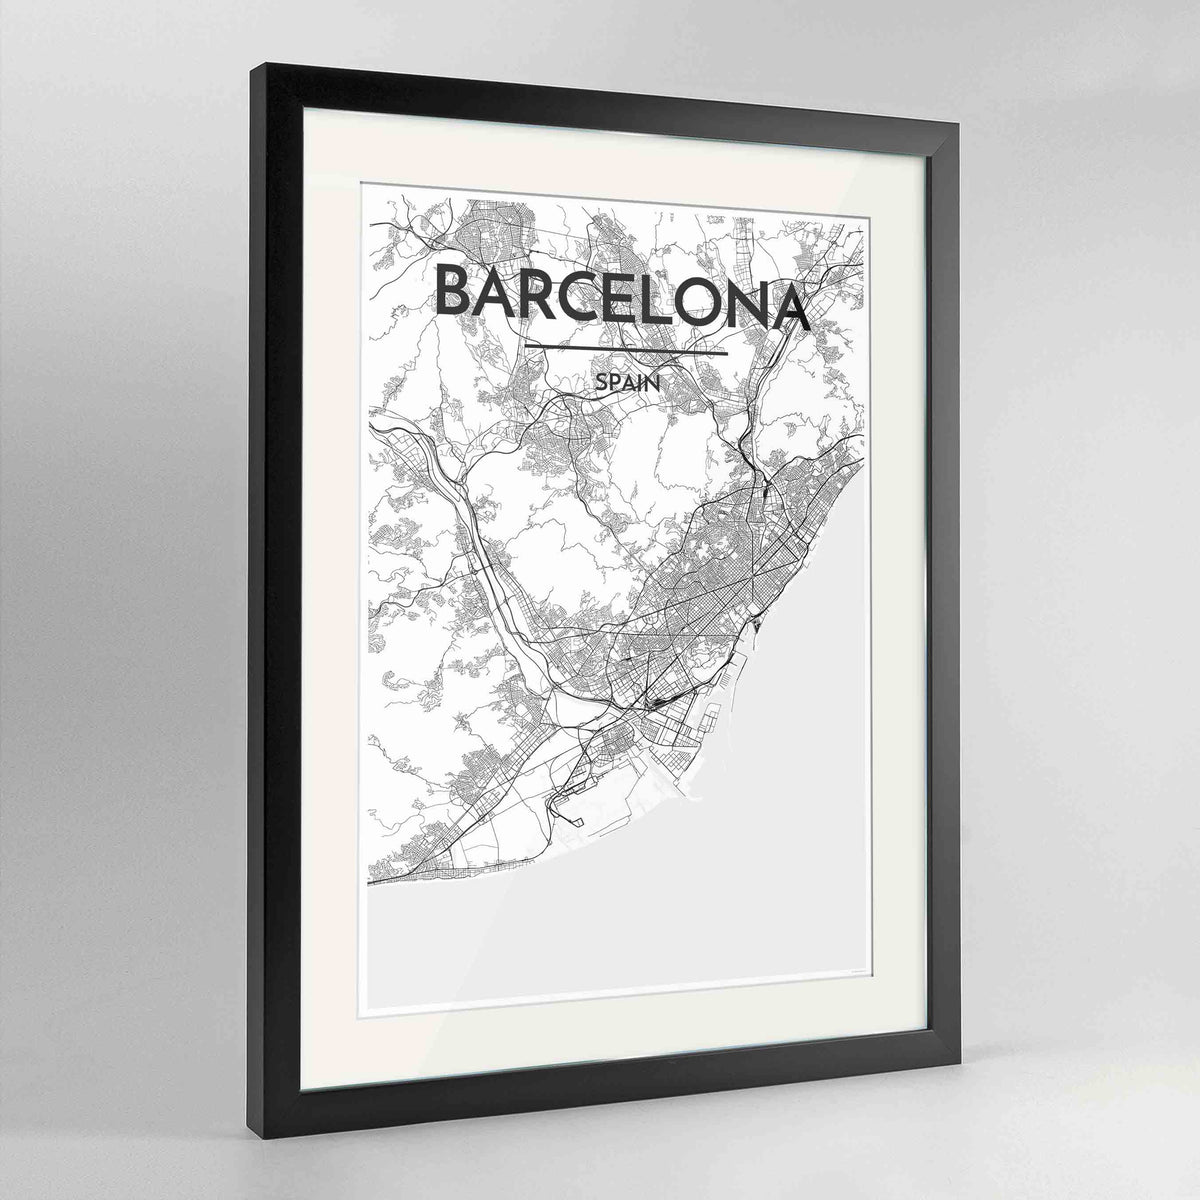 "Framed Barcelona Map Art Print 24x36"" Contemporary Black frame Point Two Design Group"